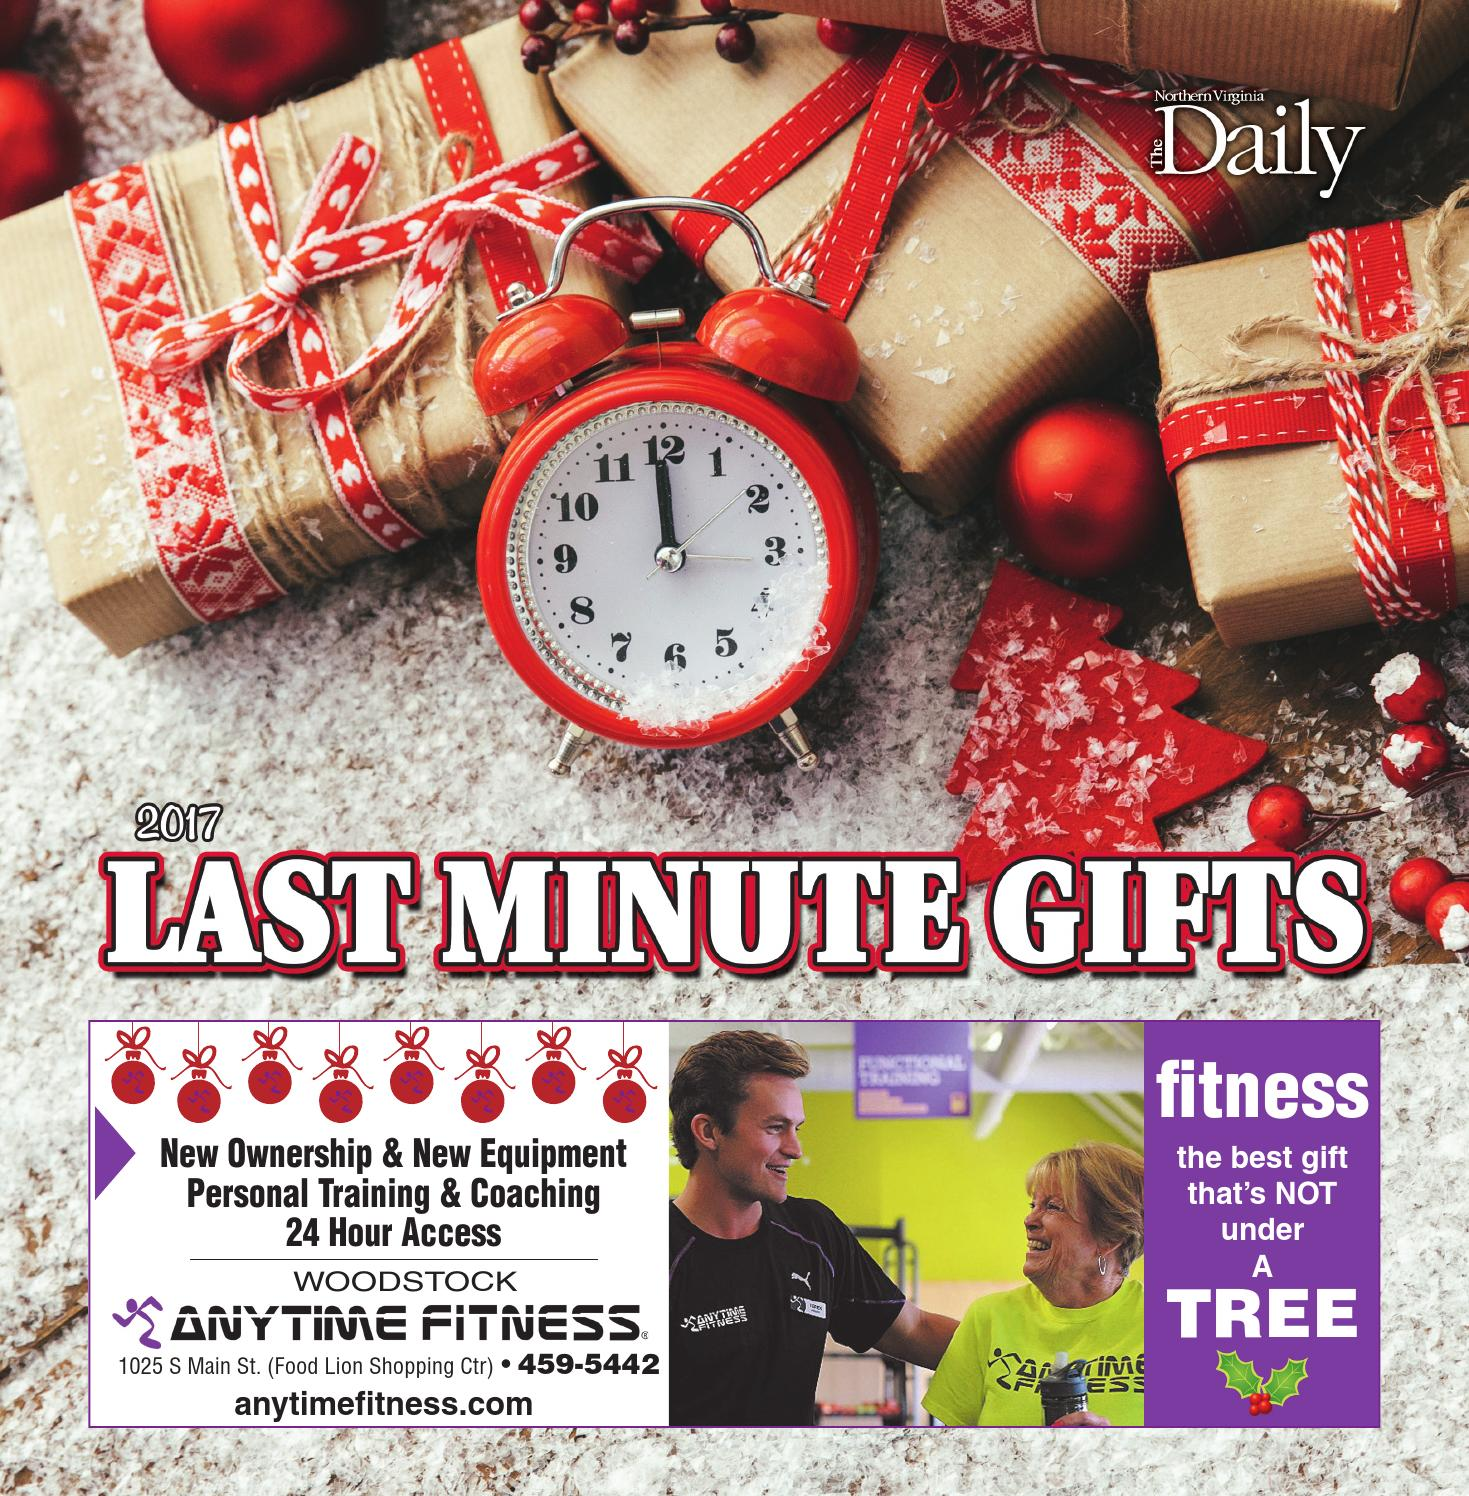 76cbc376d77ba Last Minute Gifts 2017 by Northern Virginia Daily - issuu